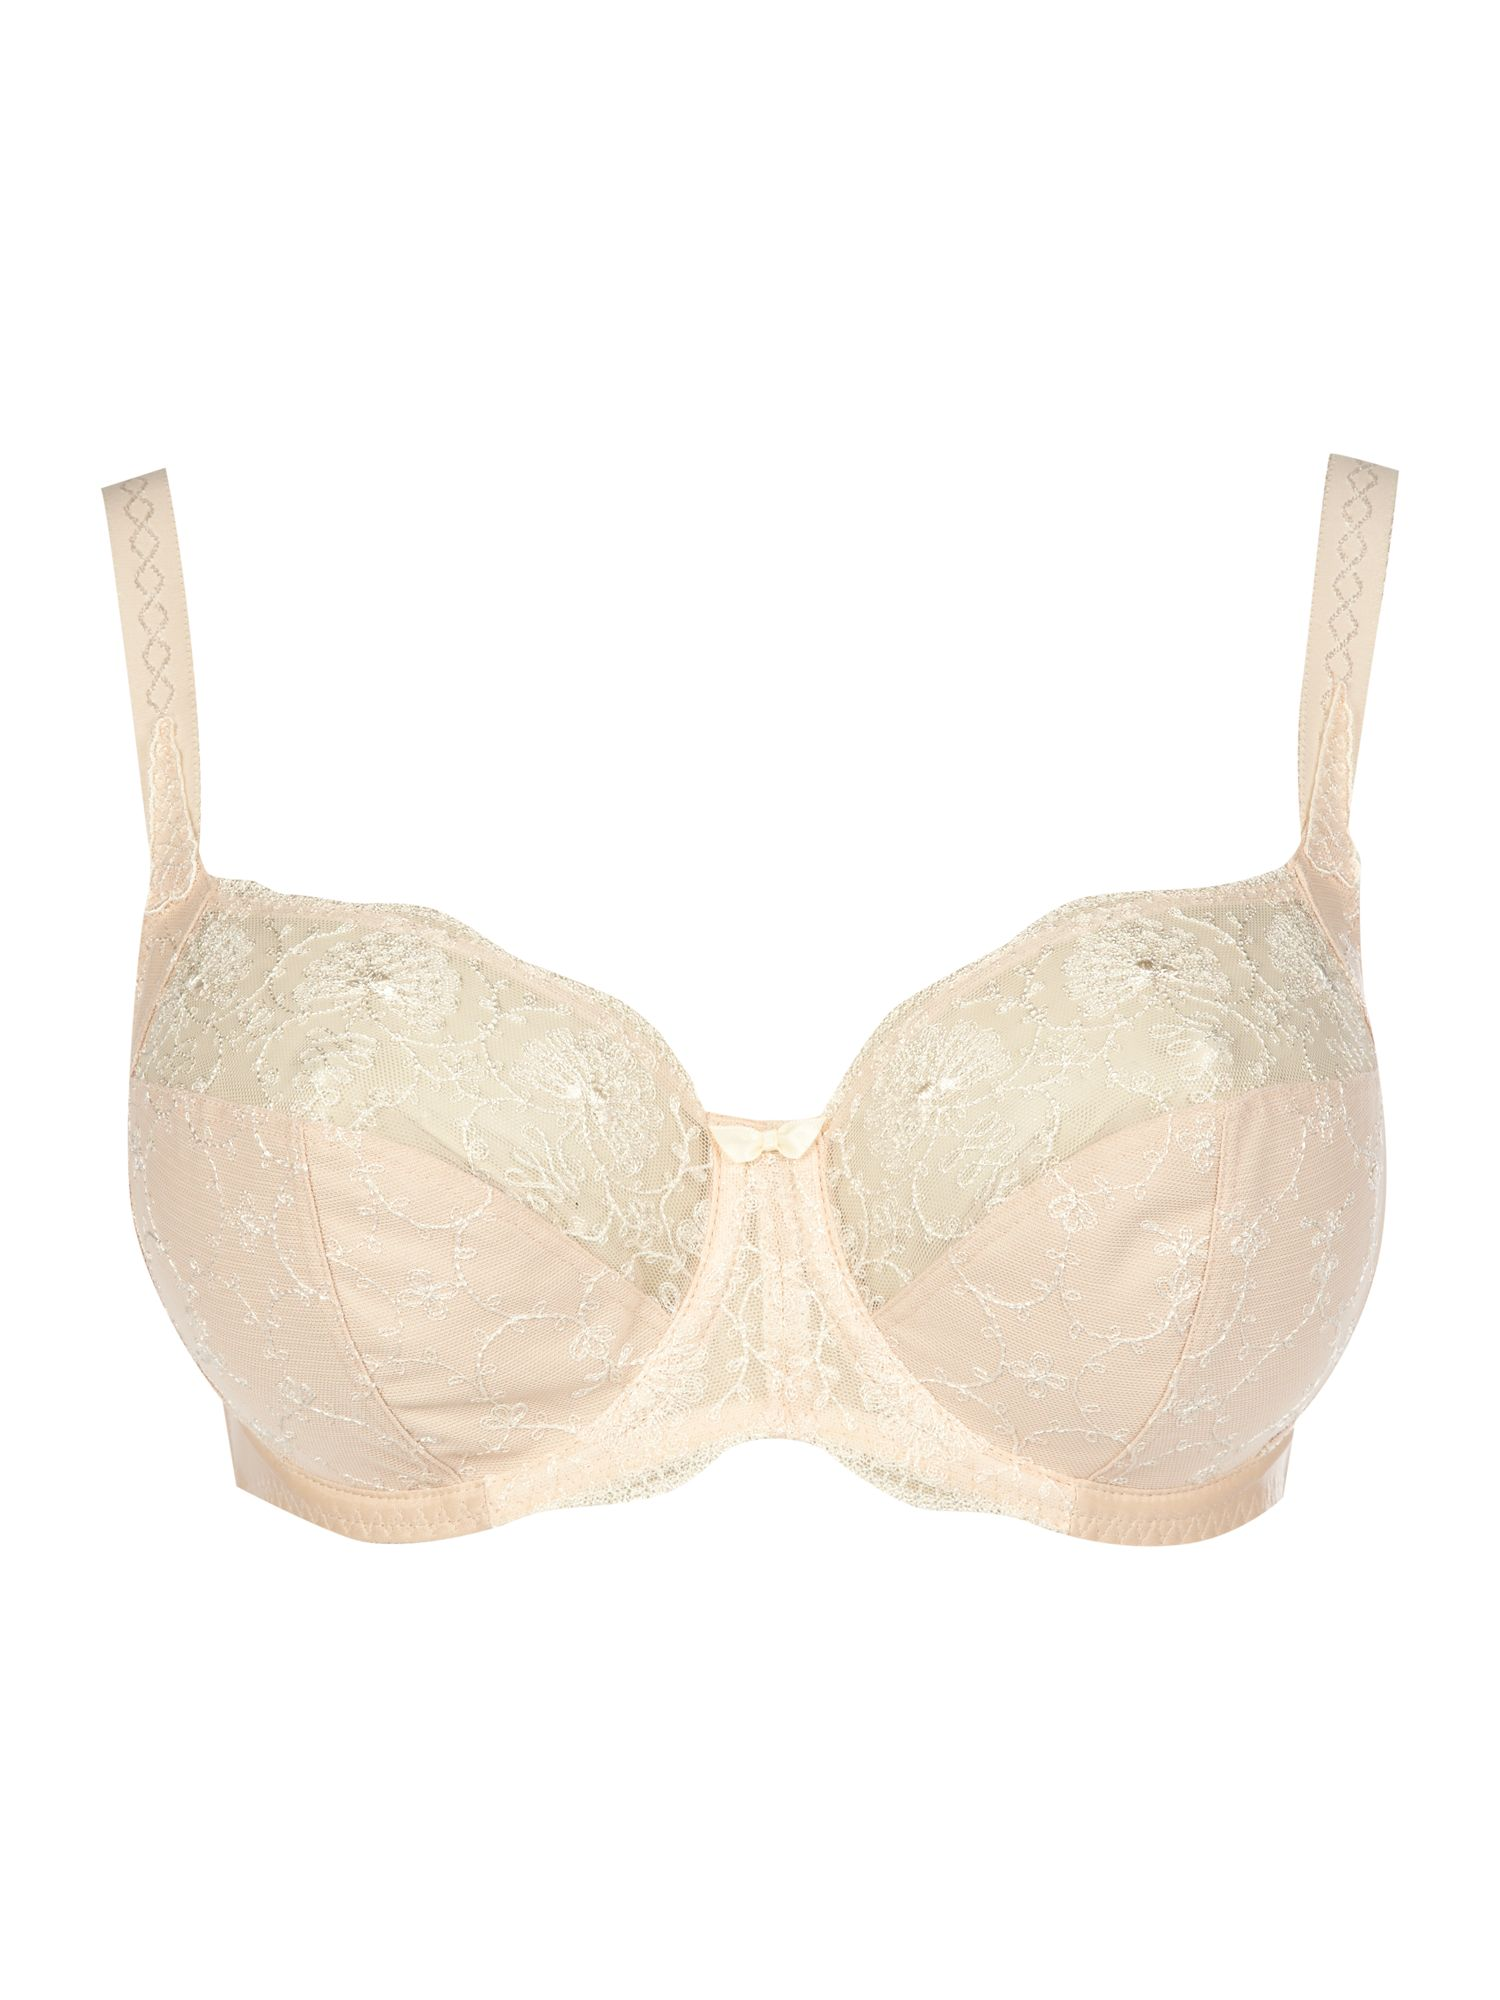 Elodie underwired side support bra